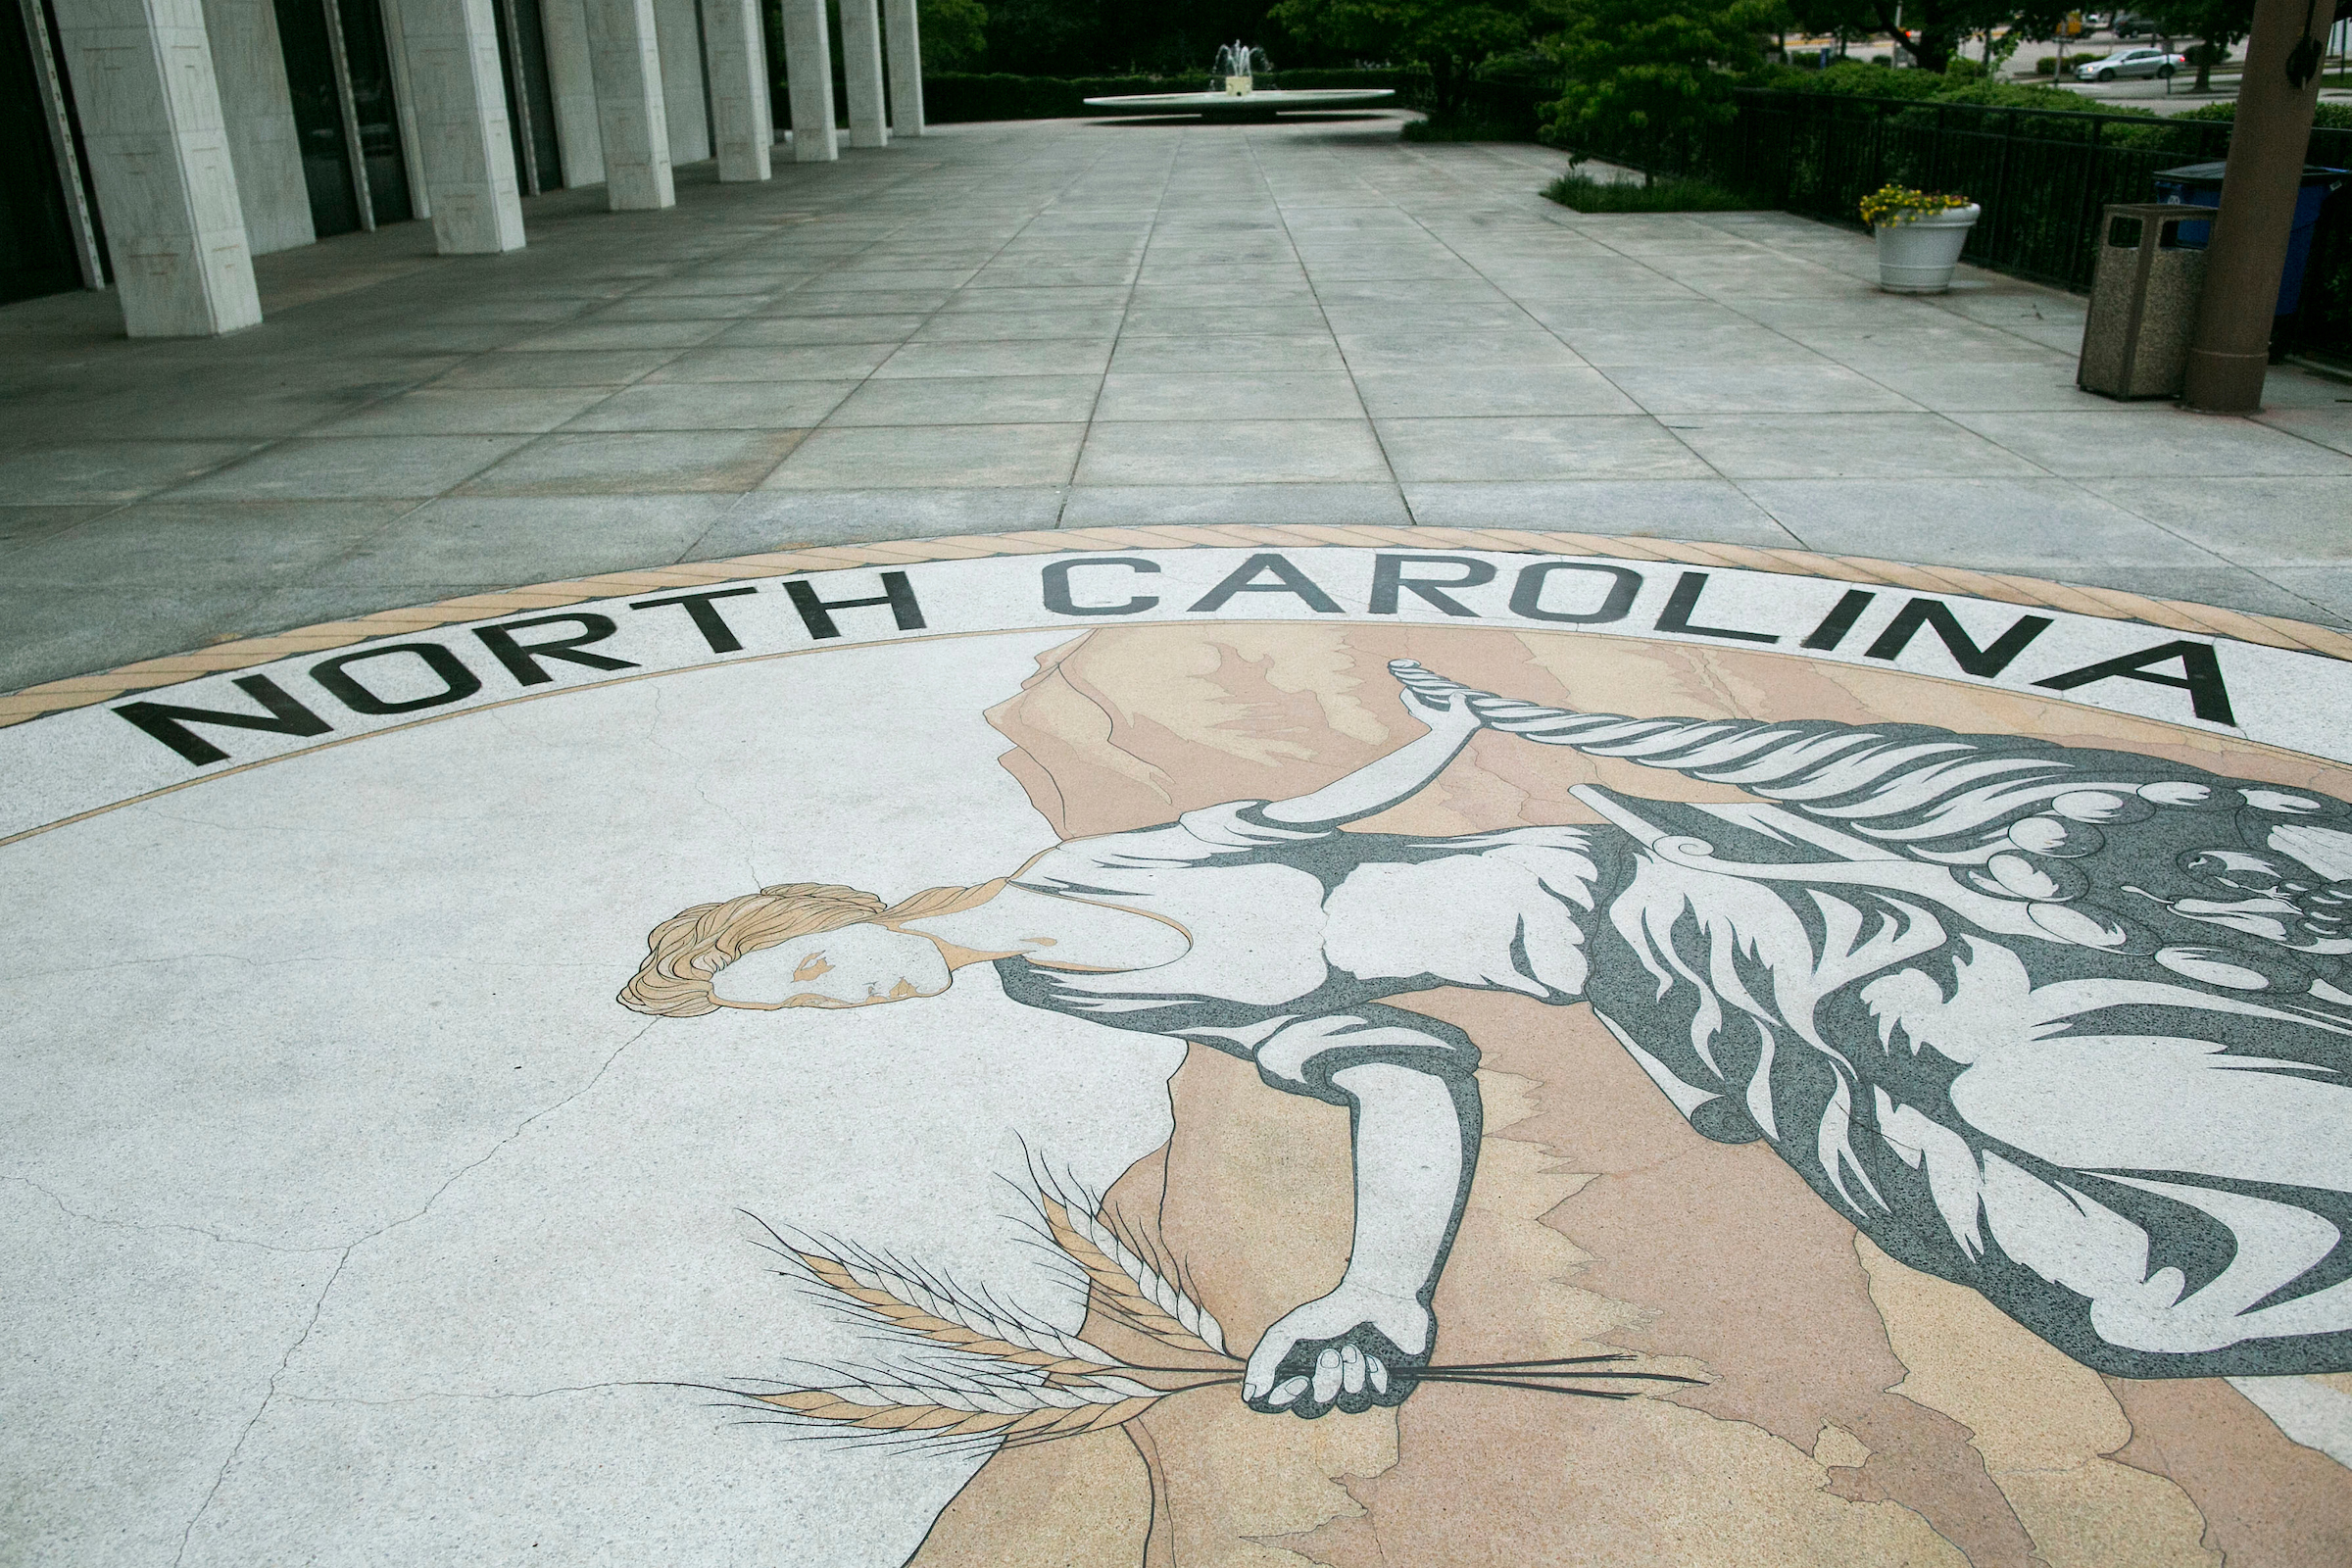 UNITED STATES - MAY 9 - The great seal of North Carolina is seen outside the state legislature building in Raleigh, N.C., on Monday, May 9, 2016. Gov. Pat McCrory and his administration sued the federal government Monday in a fight for a state law that requires transgender people to use the public restroom matching the sex on their birth certificate. (Photo By Al Drago/CQ Roll Call)